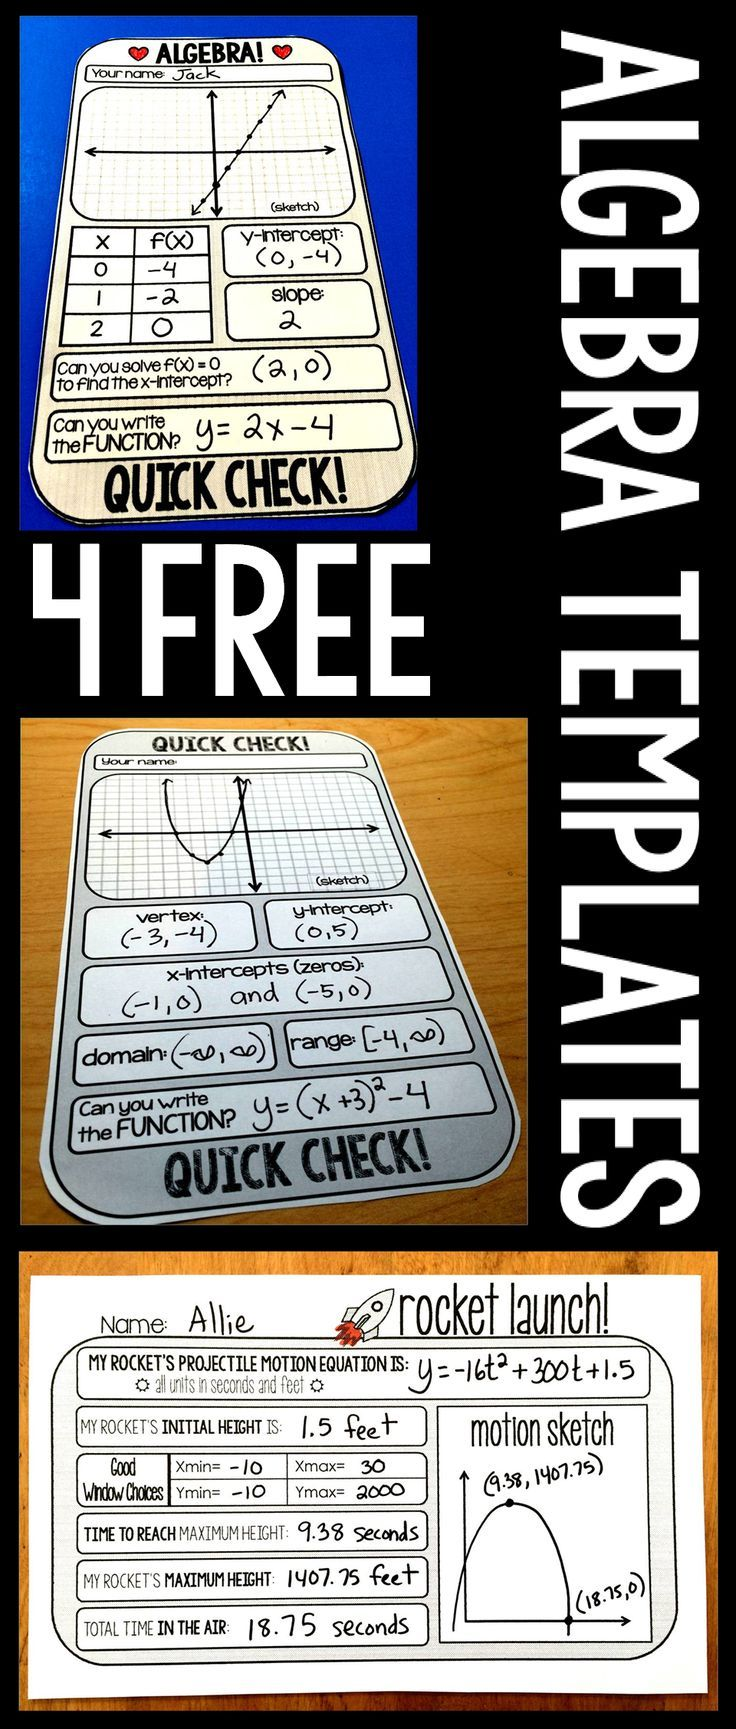 I LOVE warm-up templates! It makes life so much easier to know my warm-up is all set and ready to go. Here are 4 FREE warm-up templates that will work in Algebra 1 and Algebra 2. I use them in my Special Ed Algebra 2 classes. The repeated practice on the skills covered by the templates give my students a ton of confidence and has helped them retain information so much better.   All of these templates are available for FREE download in my TpT store. They will also be linked at the bottom of…